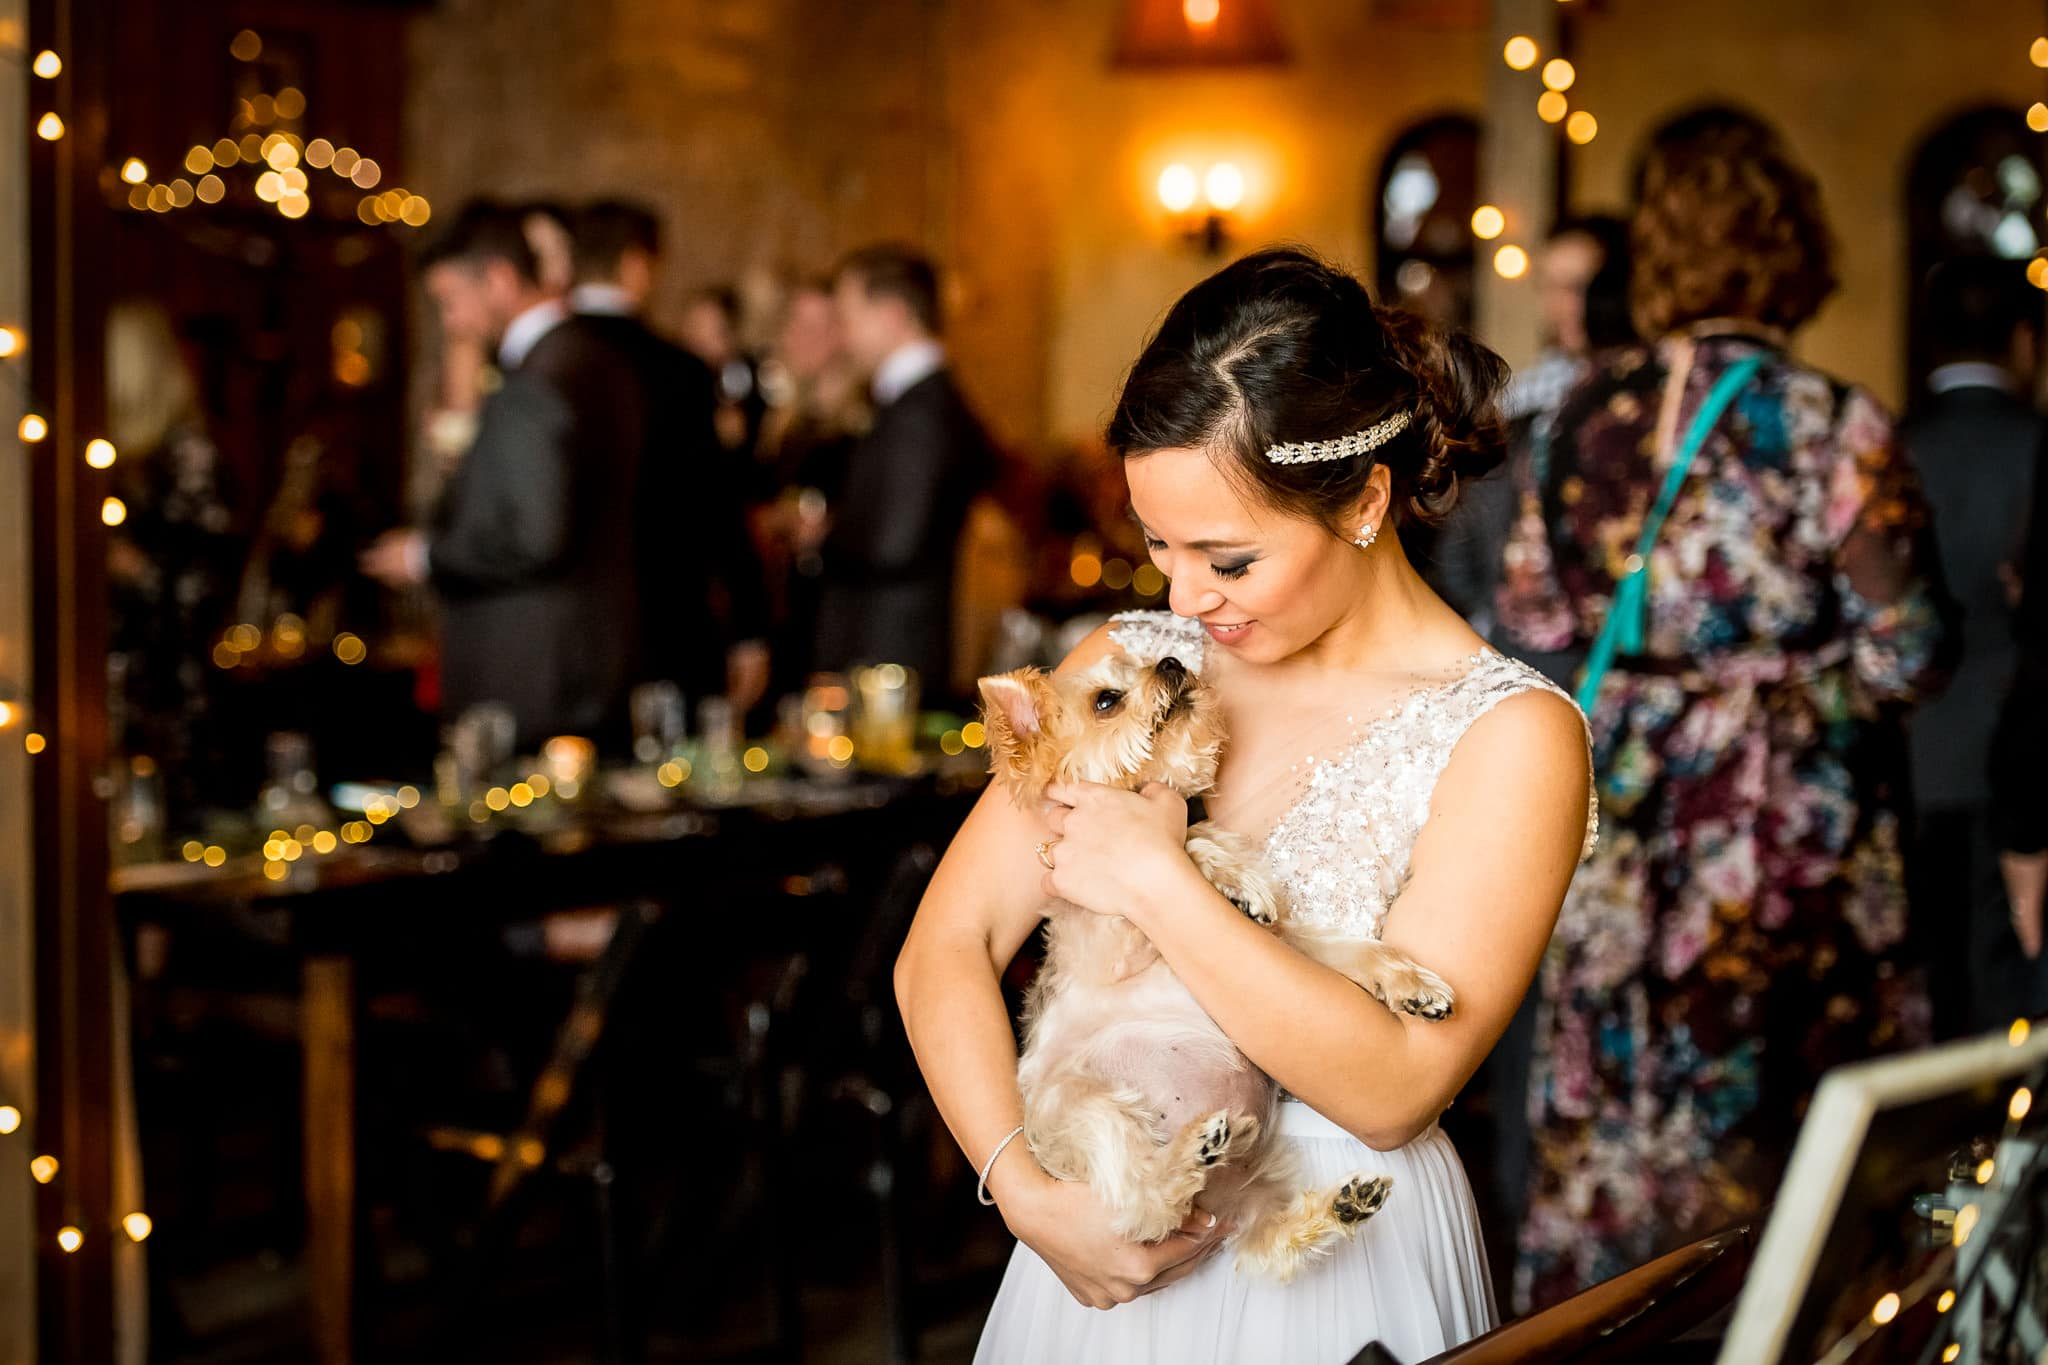 Bride and her dog sharing a beautiful moment during the wedding reception at Aster Cafe